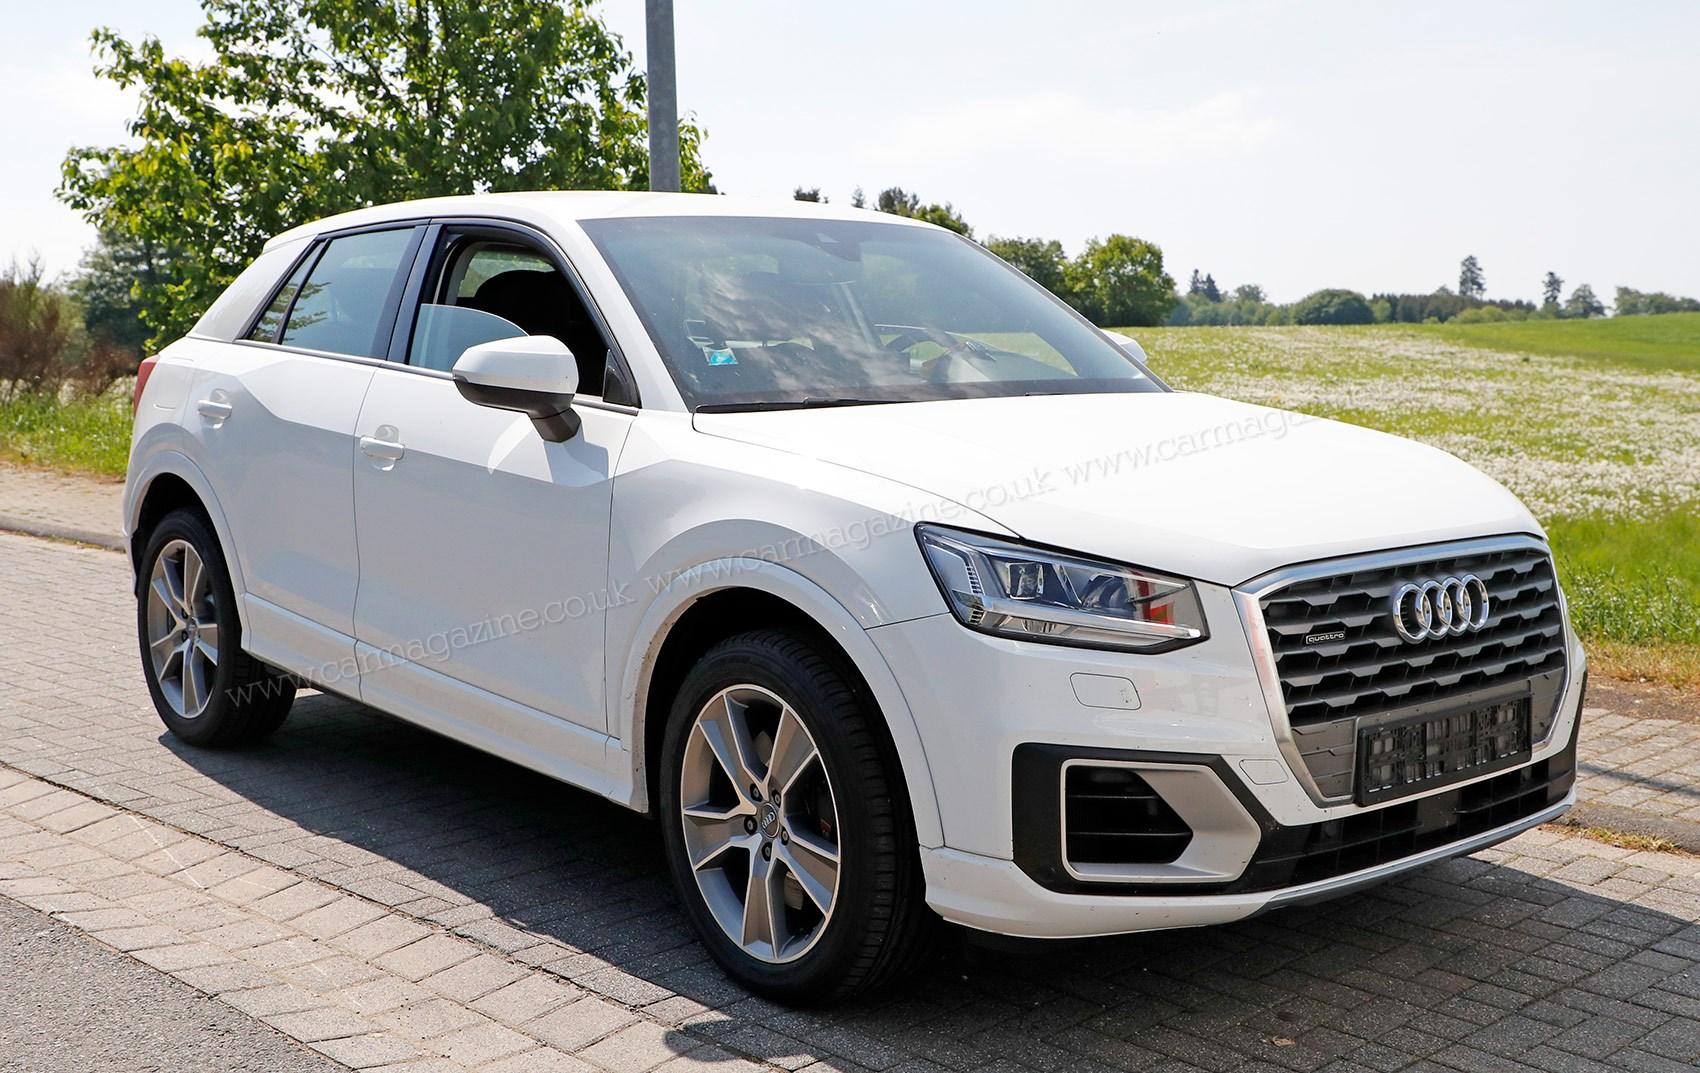 Audi SQ Crossover Spy Photos News Prices On Sale Date CAR - Car leasing ireland audi